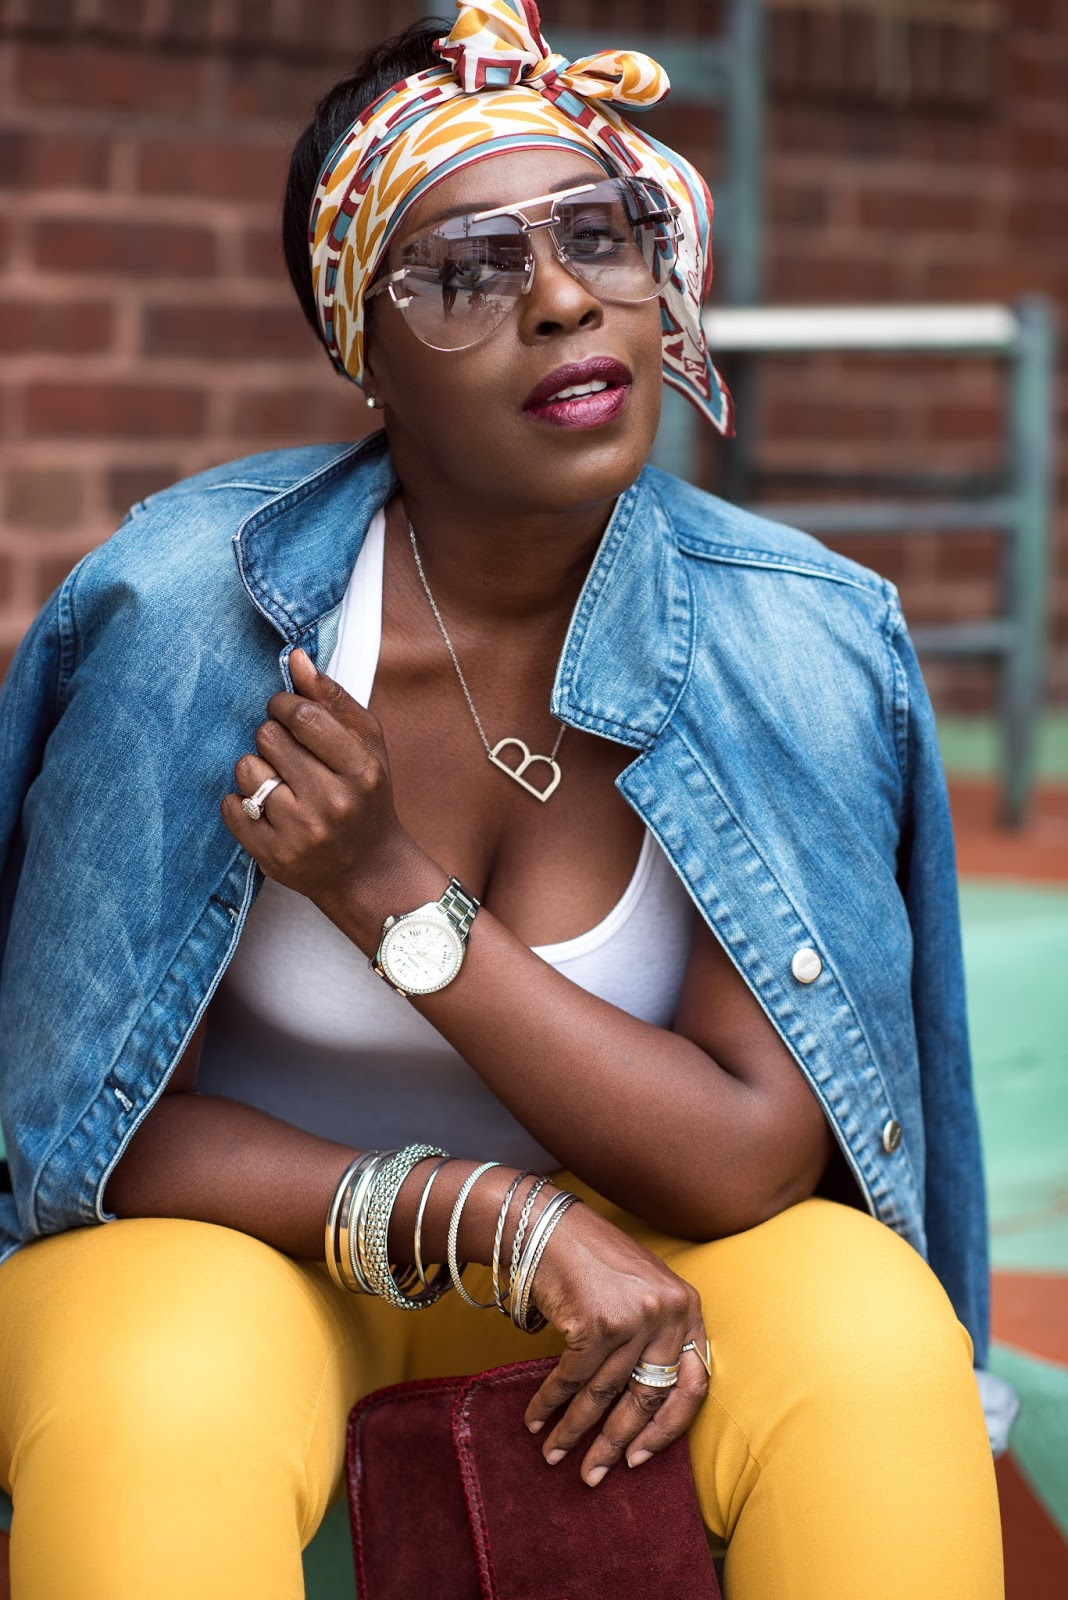 Denim Jacket, White Tank Top, Yellow Pants, Best Black Fashion Blogger